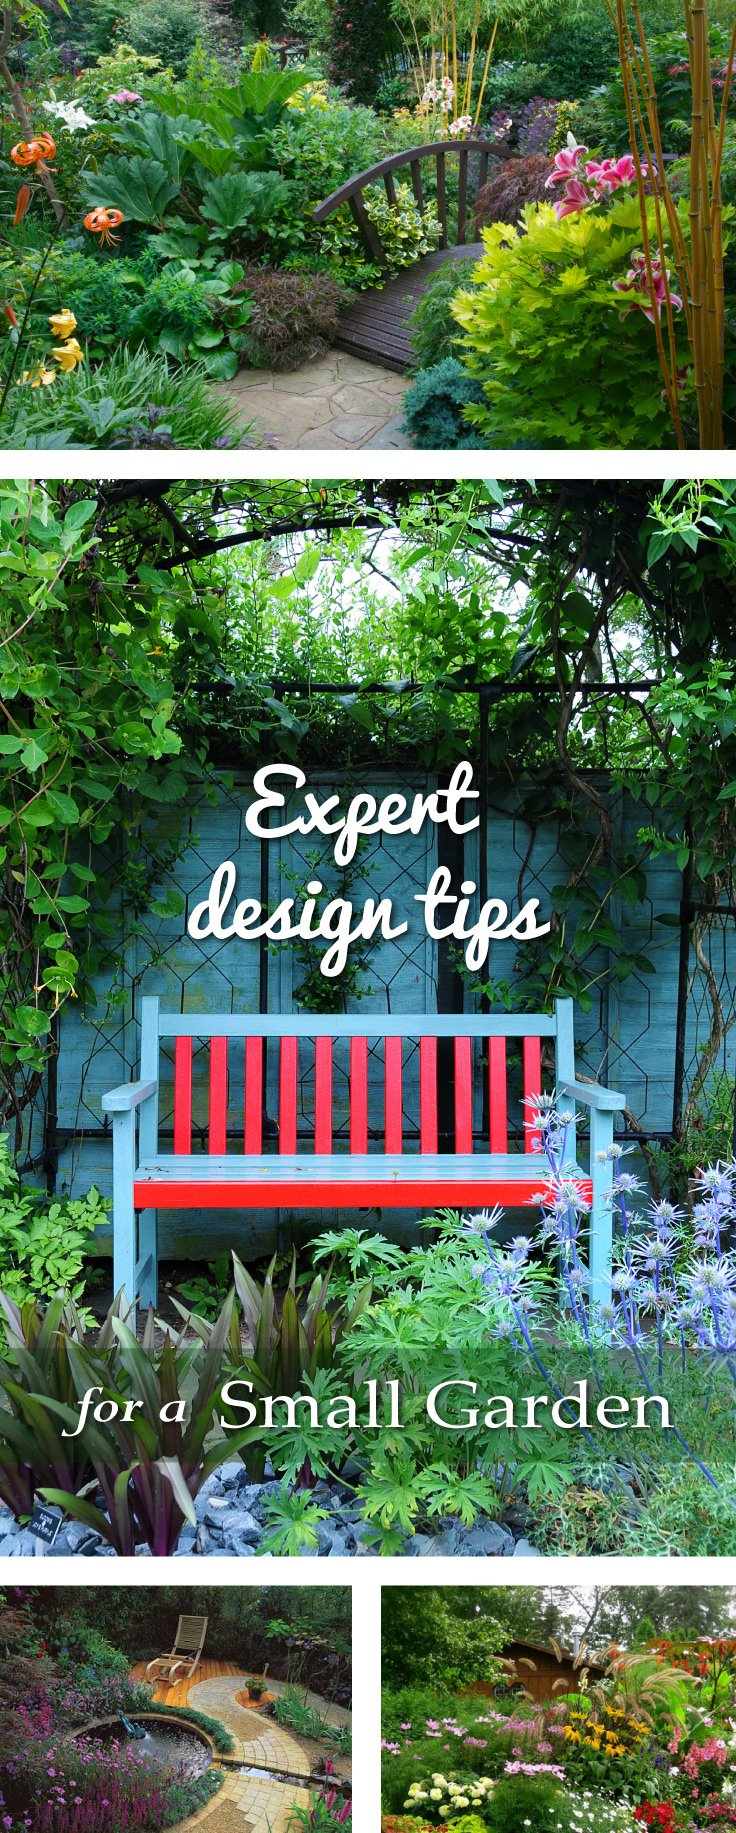 Expert design tips for a small garden